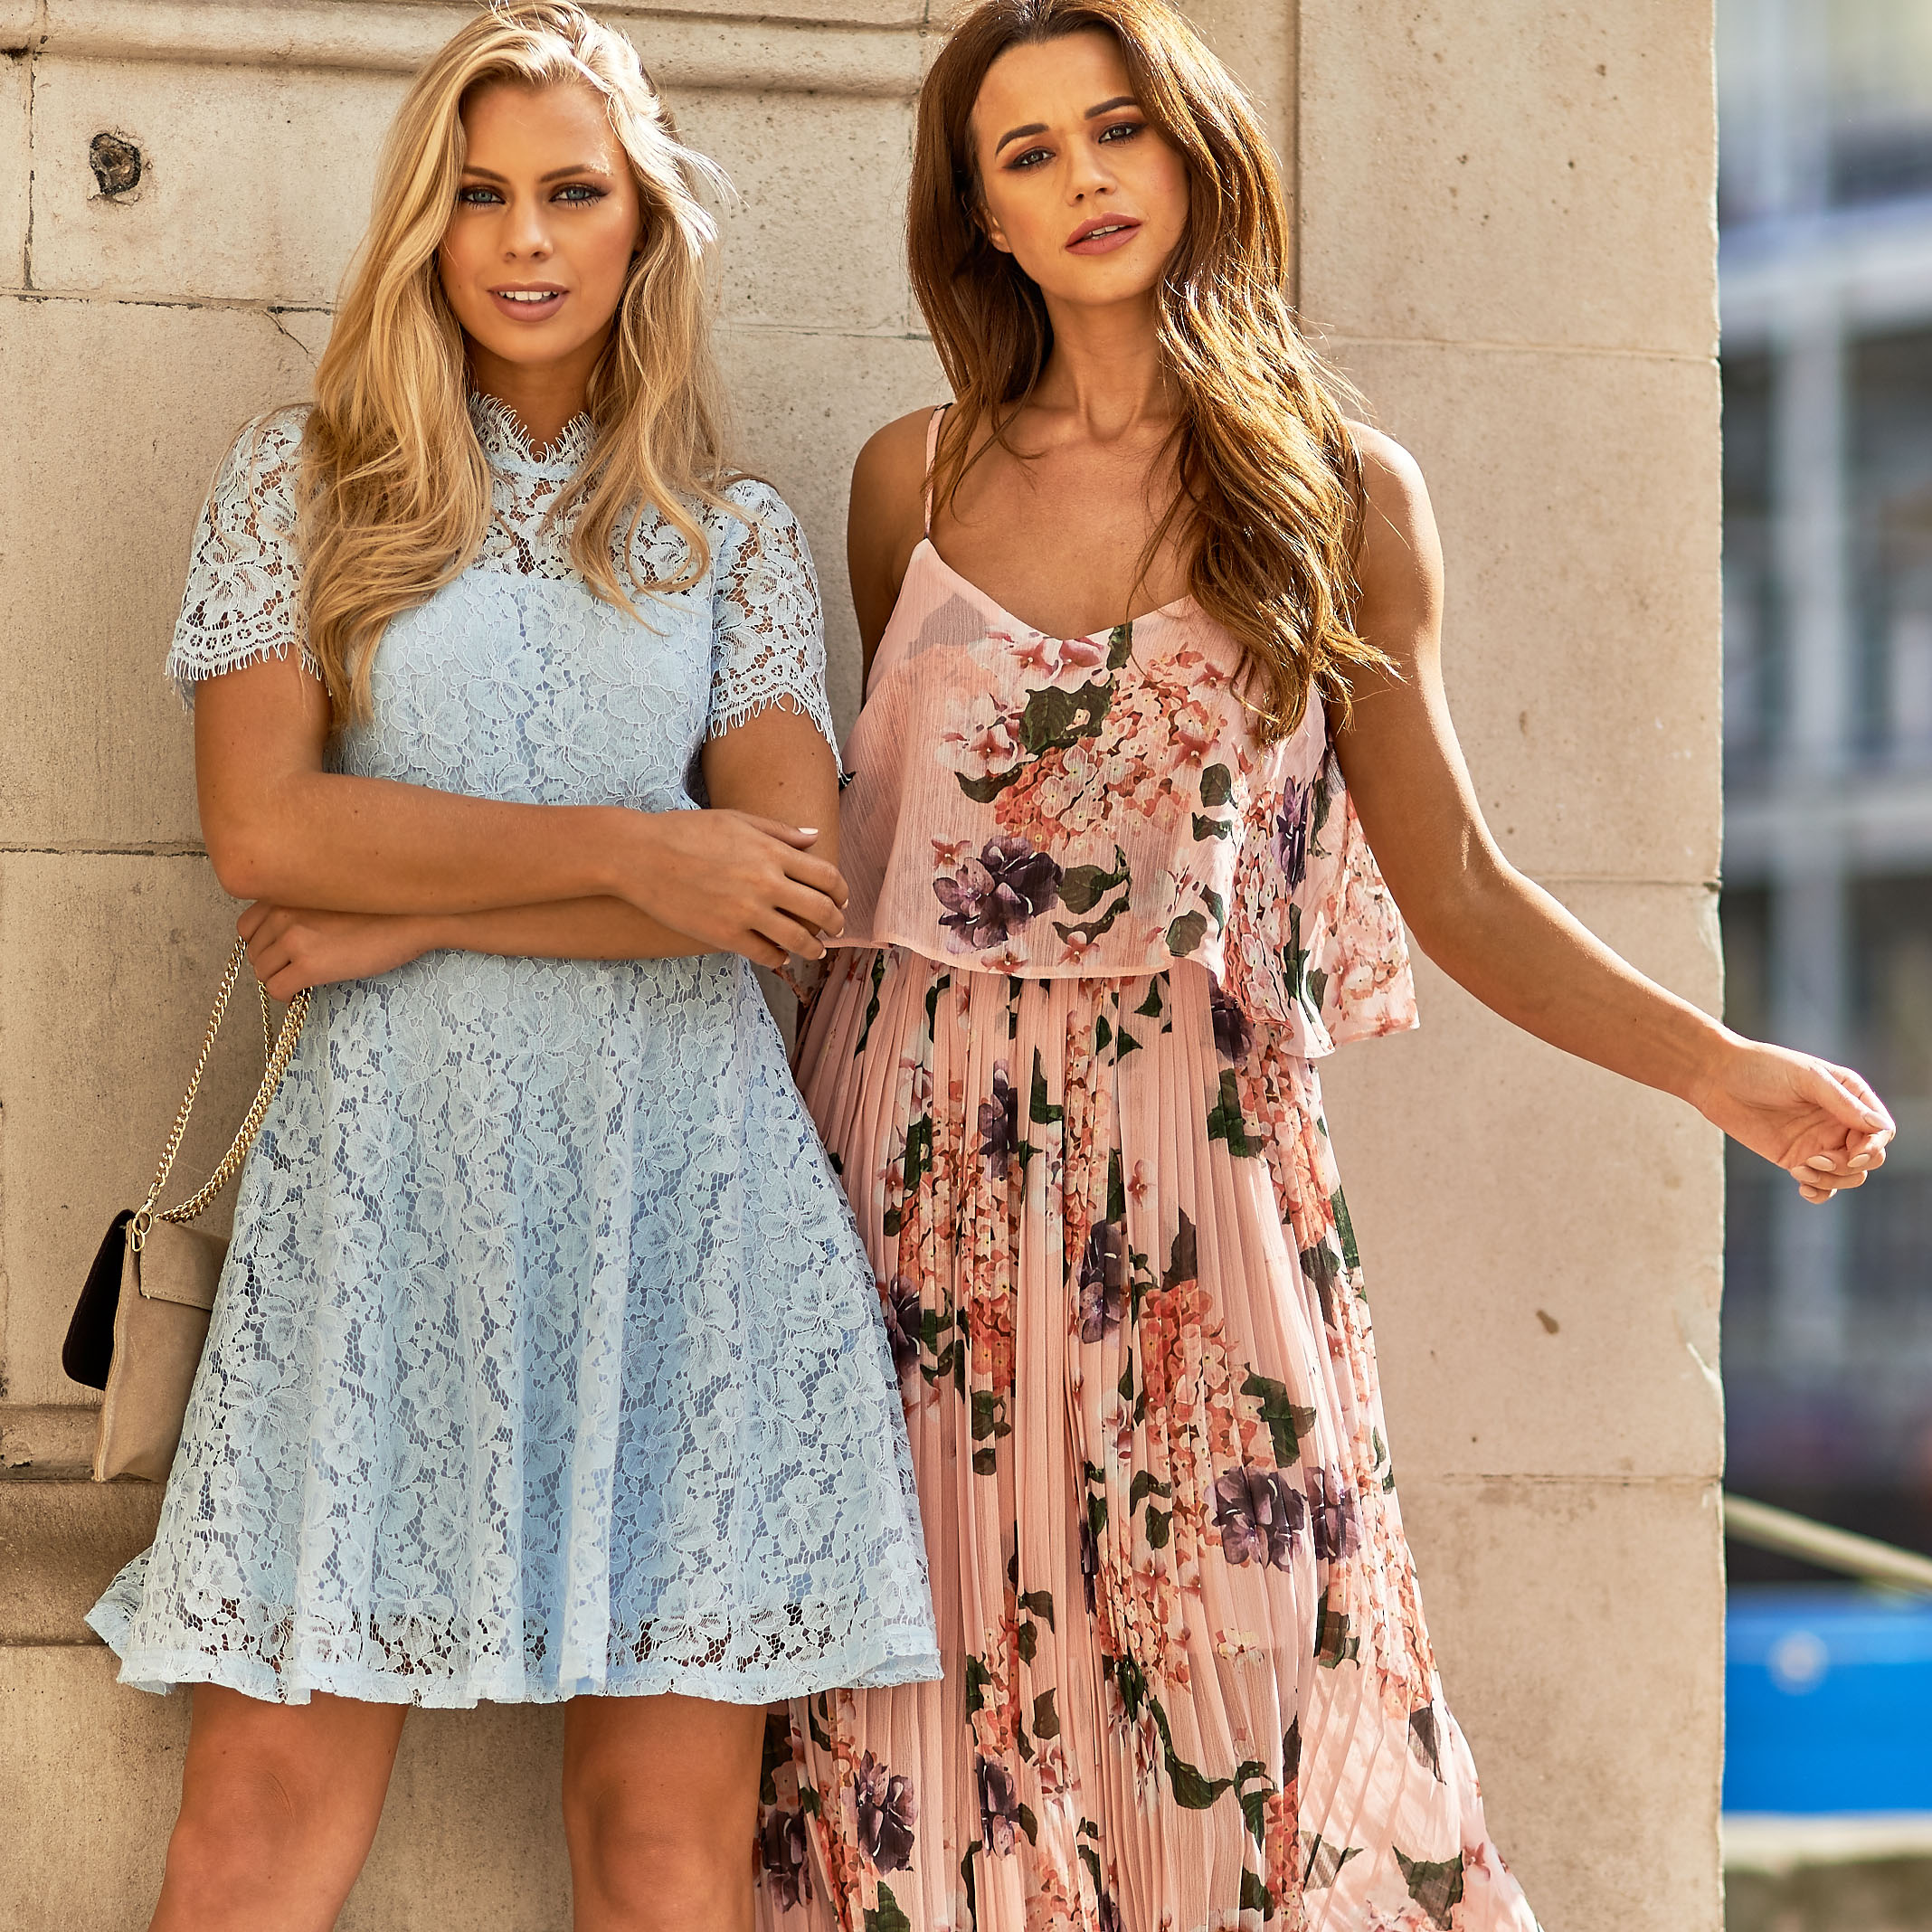 Summer Wedding Outfit Ideas: 5 Guest Dresses To Nail Your Summer Wedding